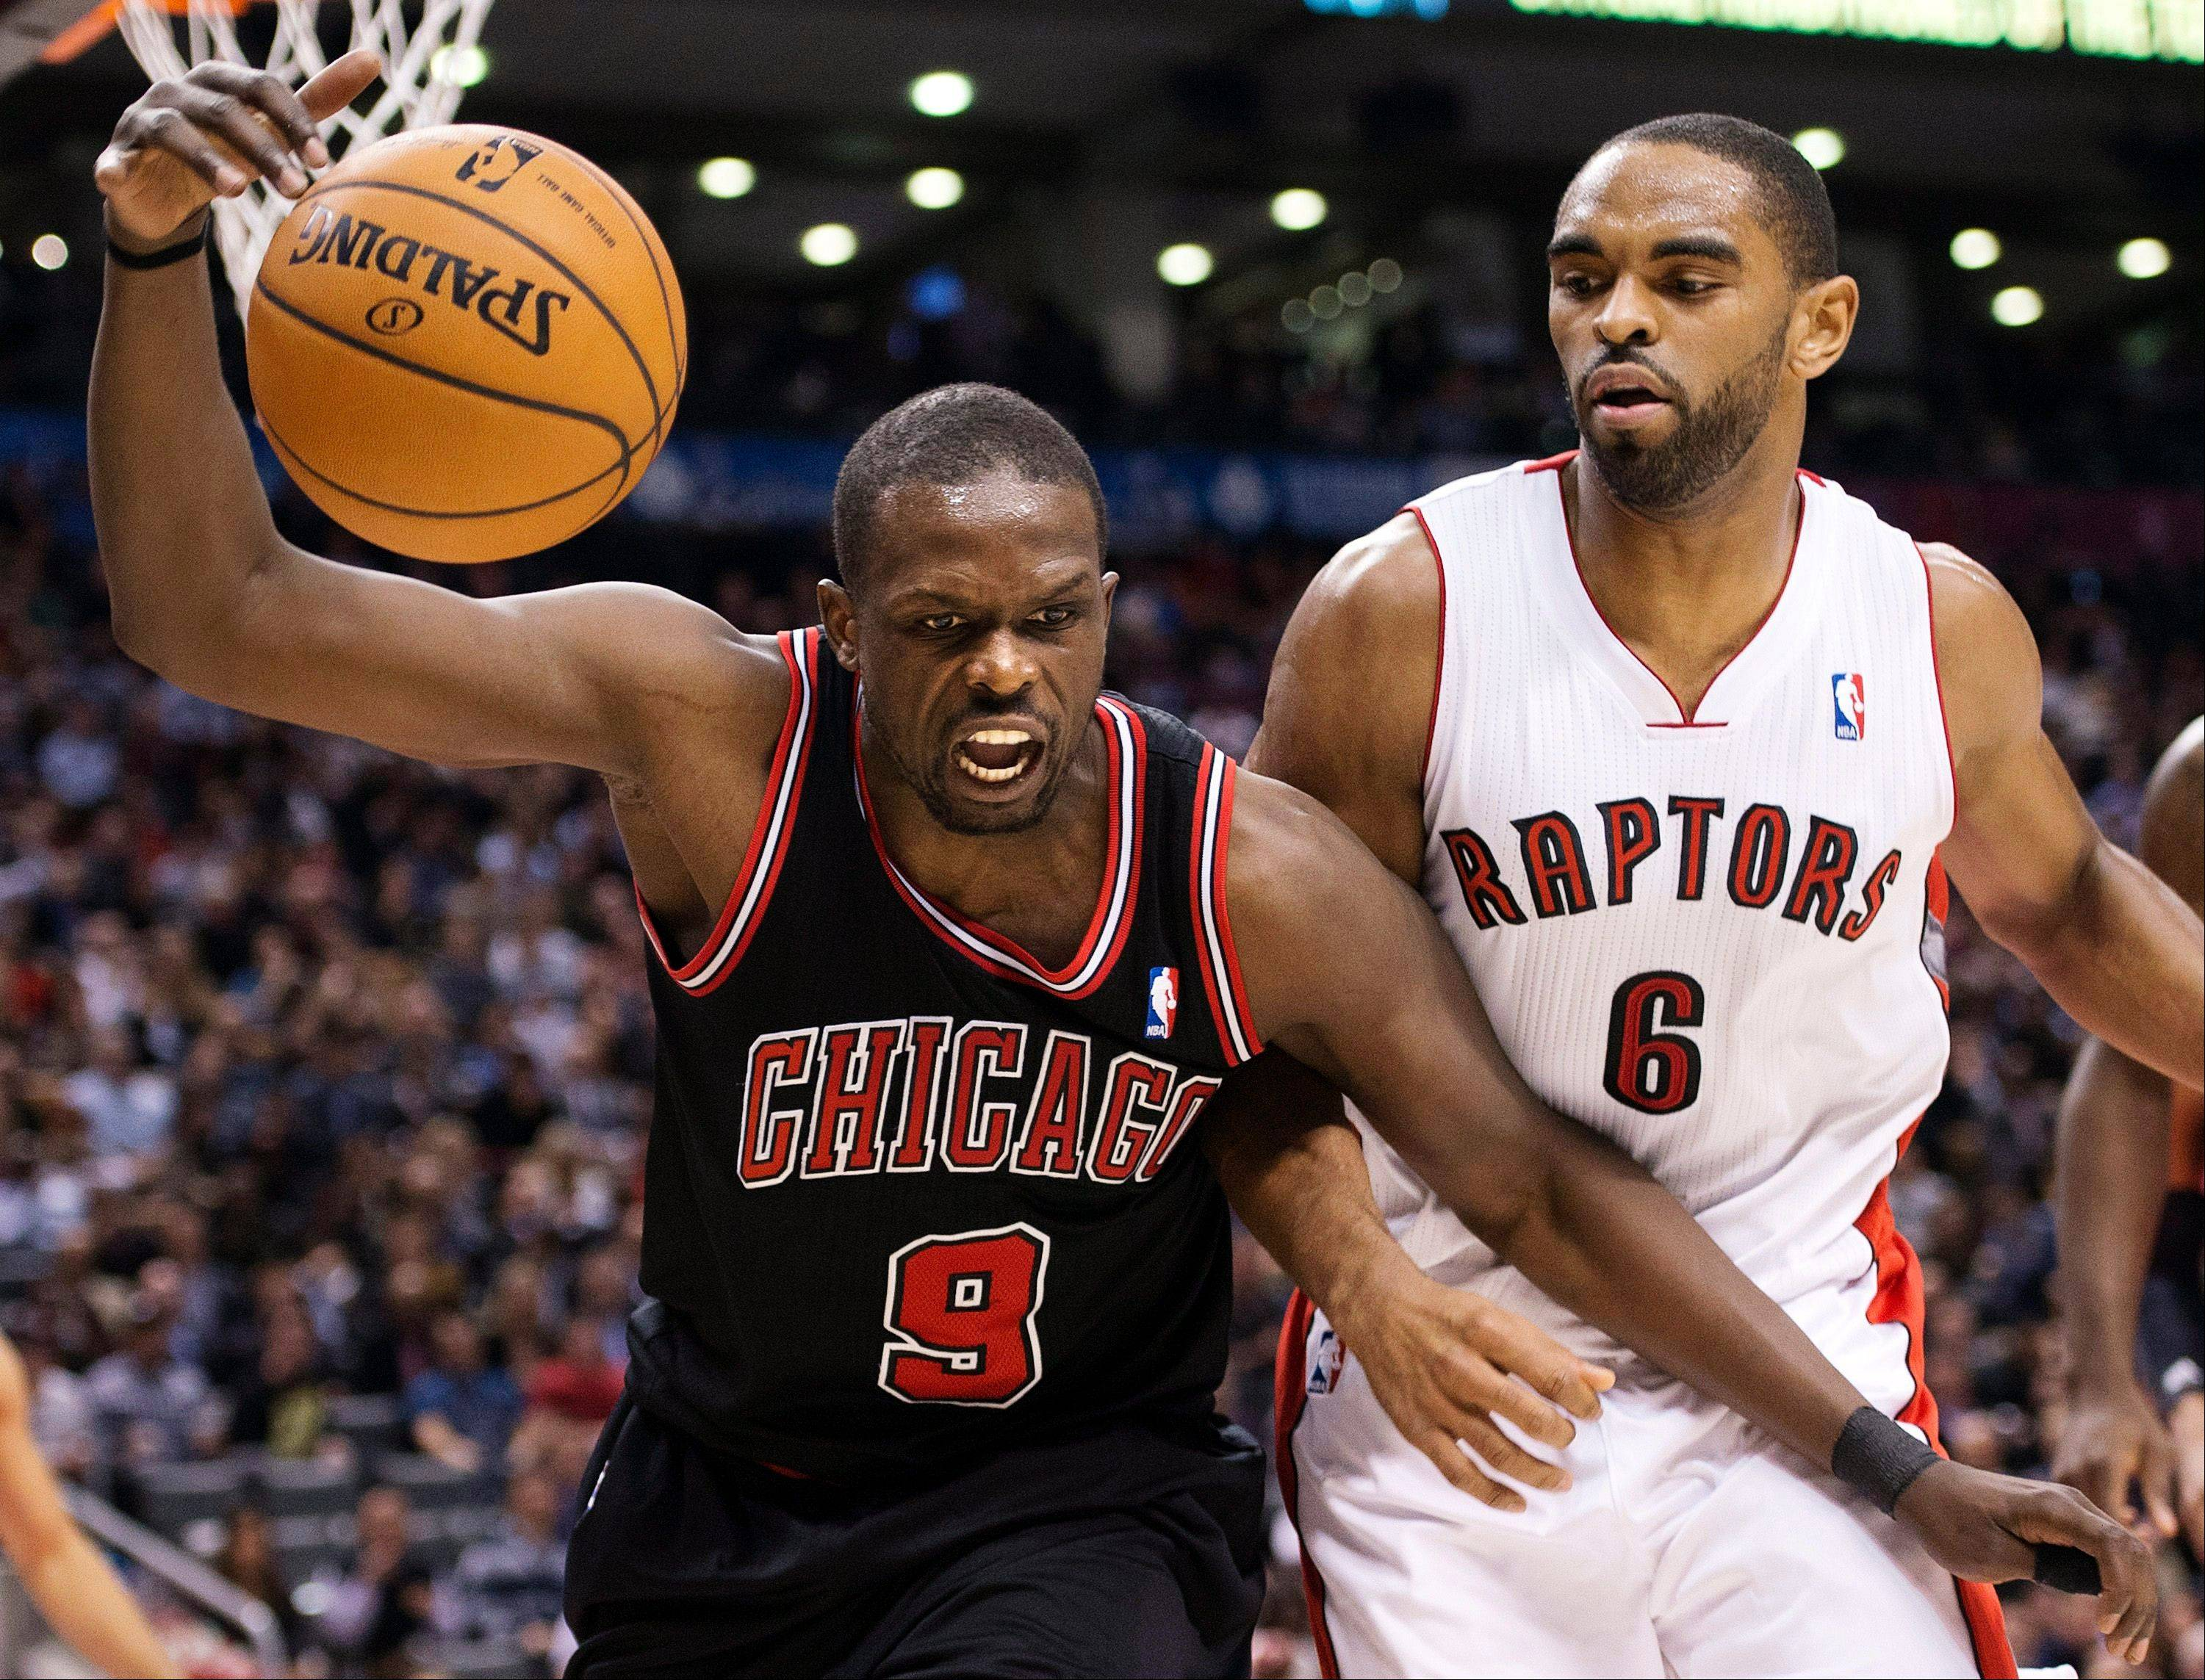 Toronto Raptors forward Alan Anderson (6) battles for a loose ball against Chicago Bulls forward Luol Deng (9) during the second half of an NBA basketball game, Wednesday, Jan. 16, 2013, in Toronto. The Bulls won 107-105 in overtime.